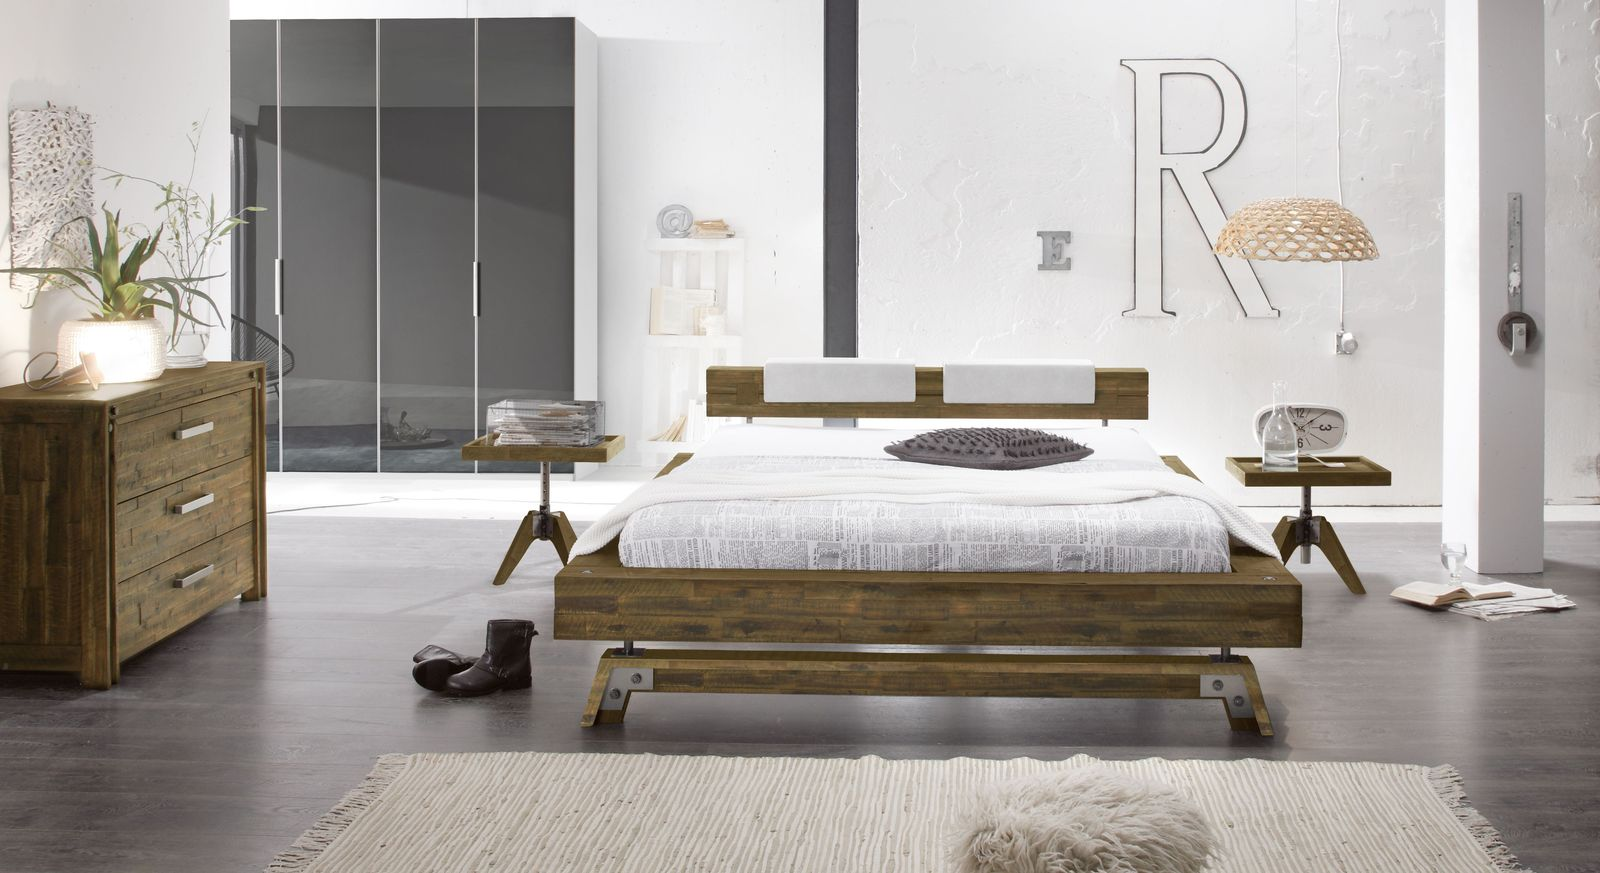 bett im industrielook aus massivholz kaufen molina. Black Bedroom Furniture Sets. Home Design Ideas